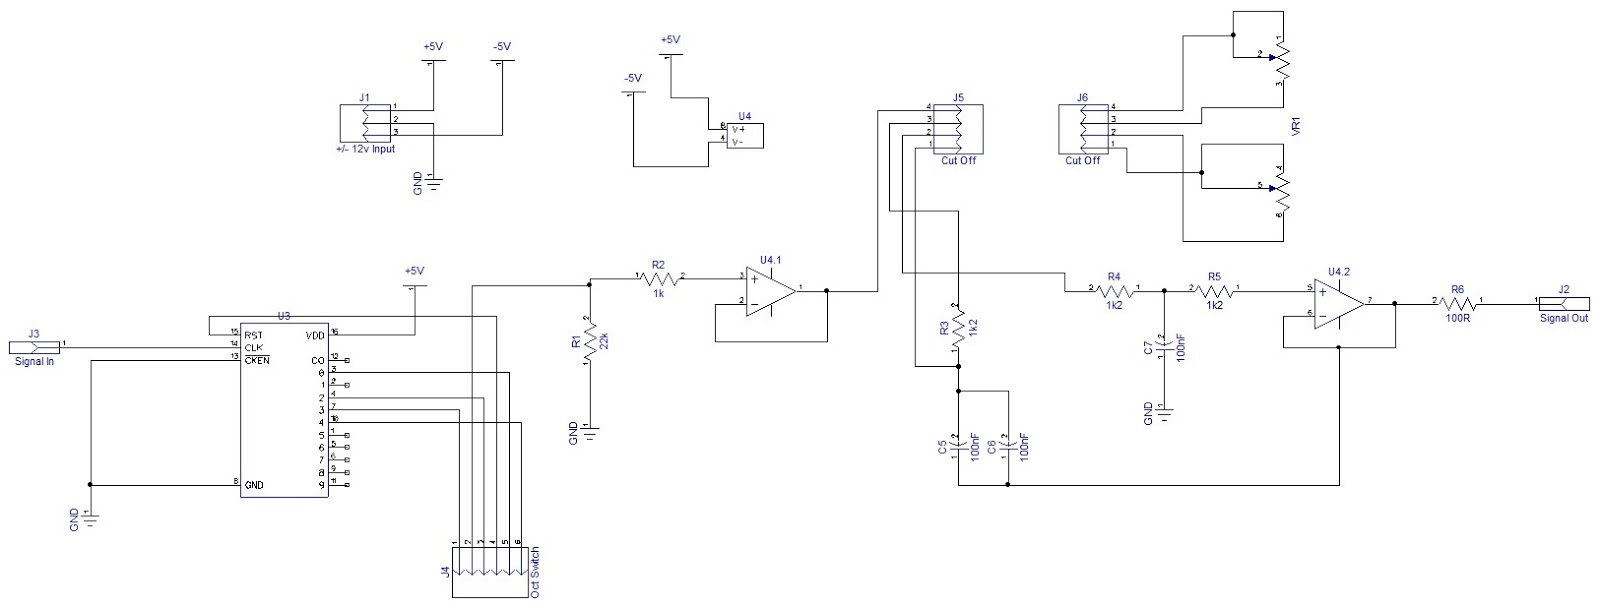 Um16 Sla Battery Charger Amongst Projects Download Image Bc549c Condenser Microphone Pre Amplifier Schematics Pc My Rather Messy Schematic For The Sub Oscillator Note Power Input Is 5v